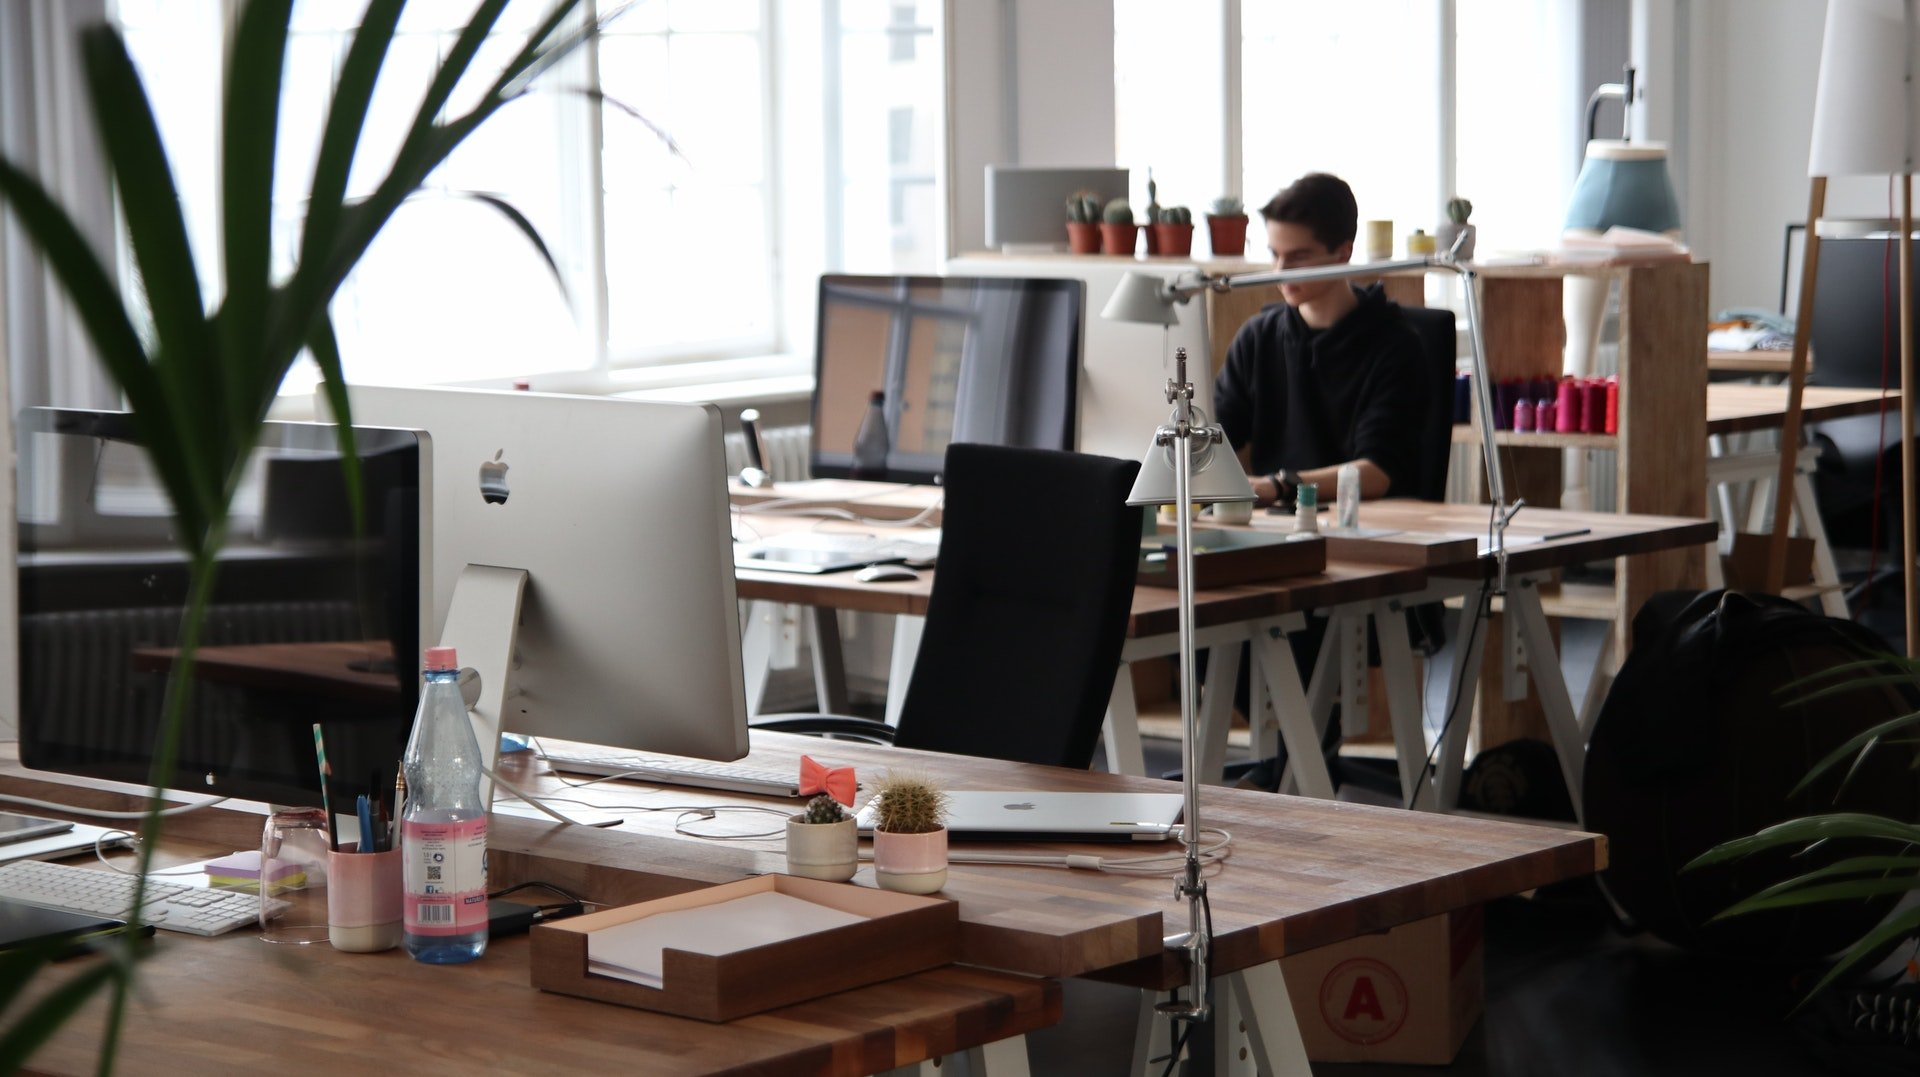 Co-working Spaces Provide Stability says Derek Lotts at Idea Girl Media